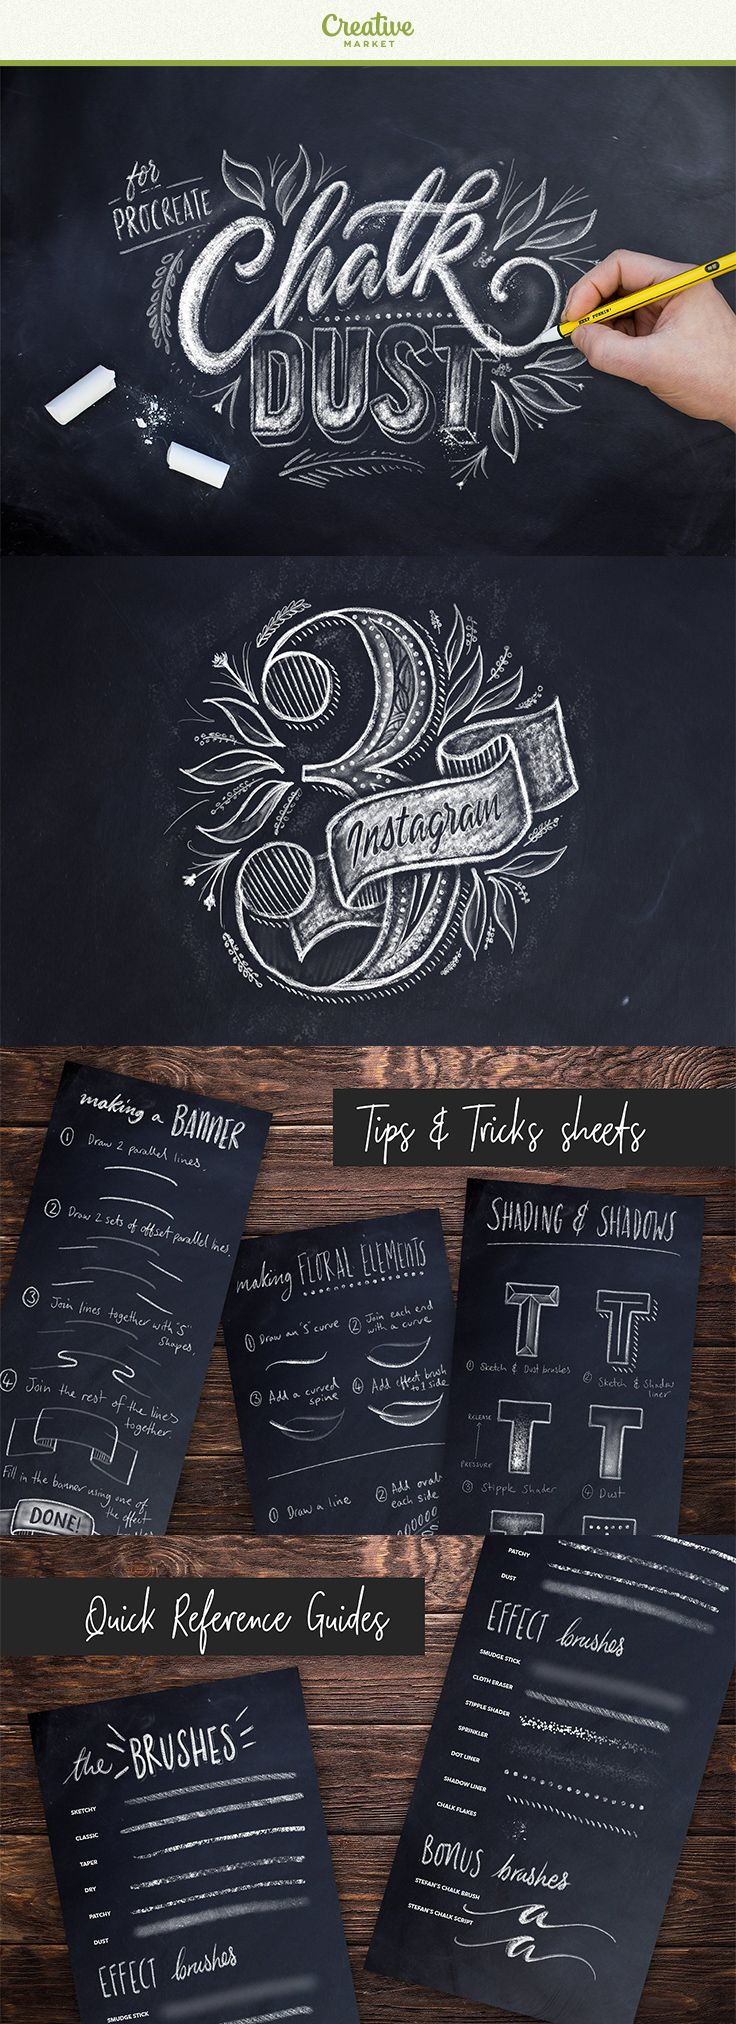 #affiliate #sponsored The Chalk Dust Procreate Lettering Kit features everything you need to create your own stunning chalkboard pieces without getting yourself cover in white dust. This pack has been made using actual chalk textures to give the most realistic looking set of brushes that you'll find for Procreate. You also get a tips and tricks guide sheet to show you how to do things like shadows and shading and drawing elements like banners and floral elements.